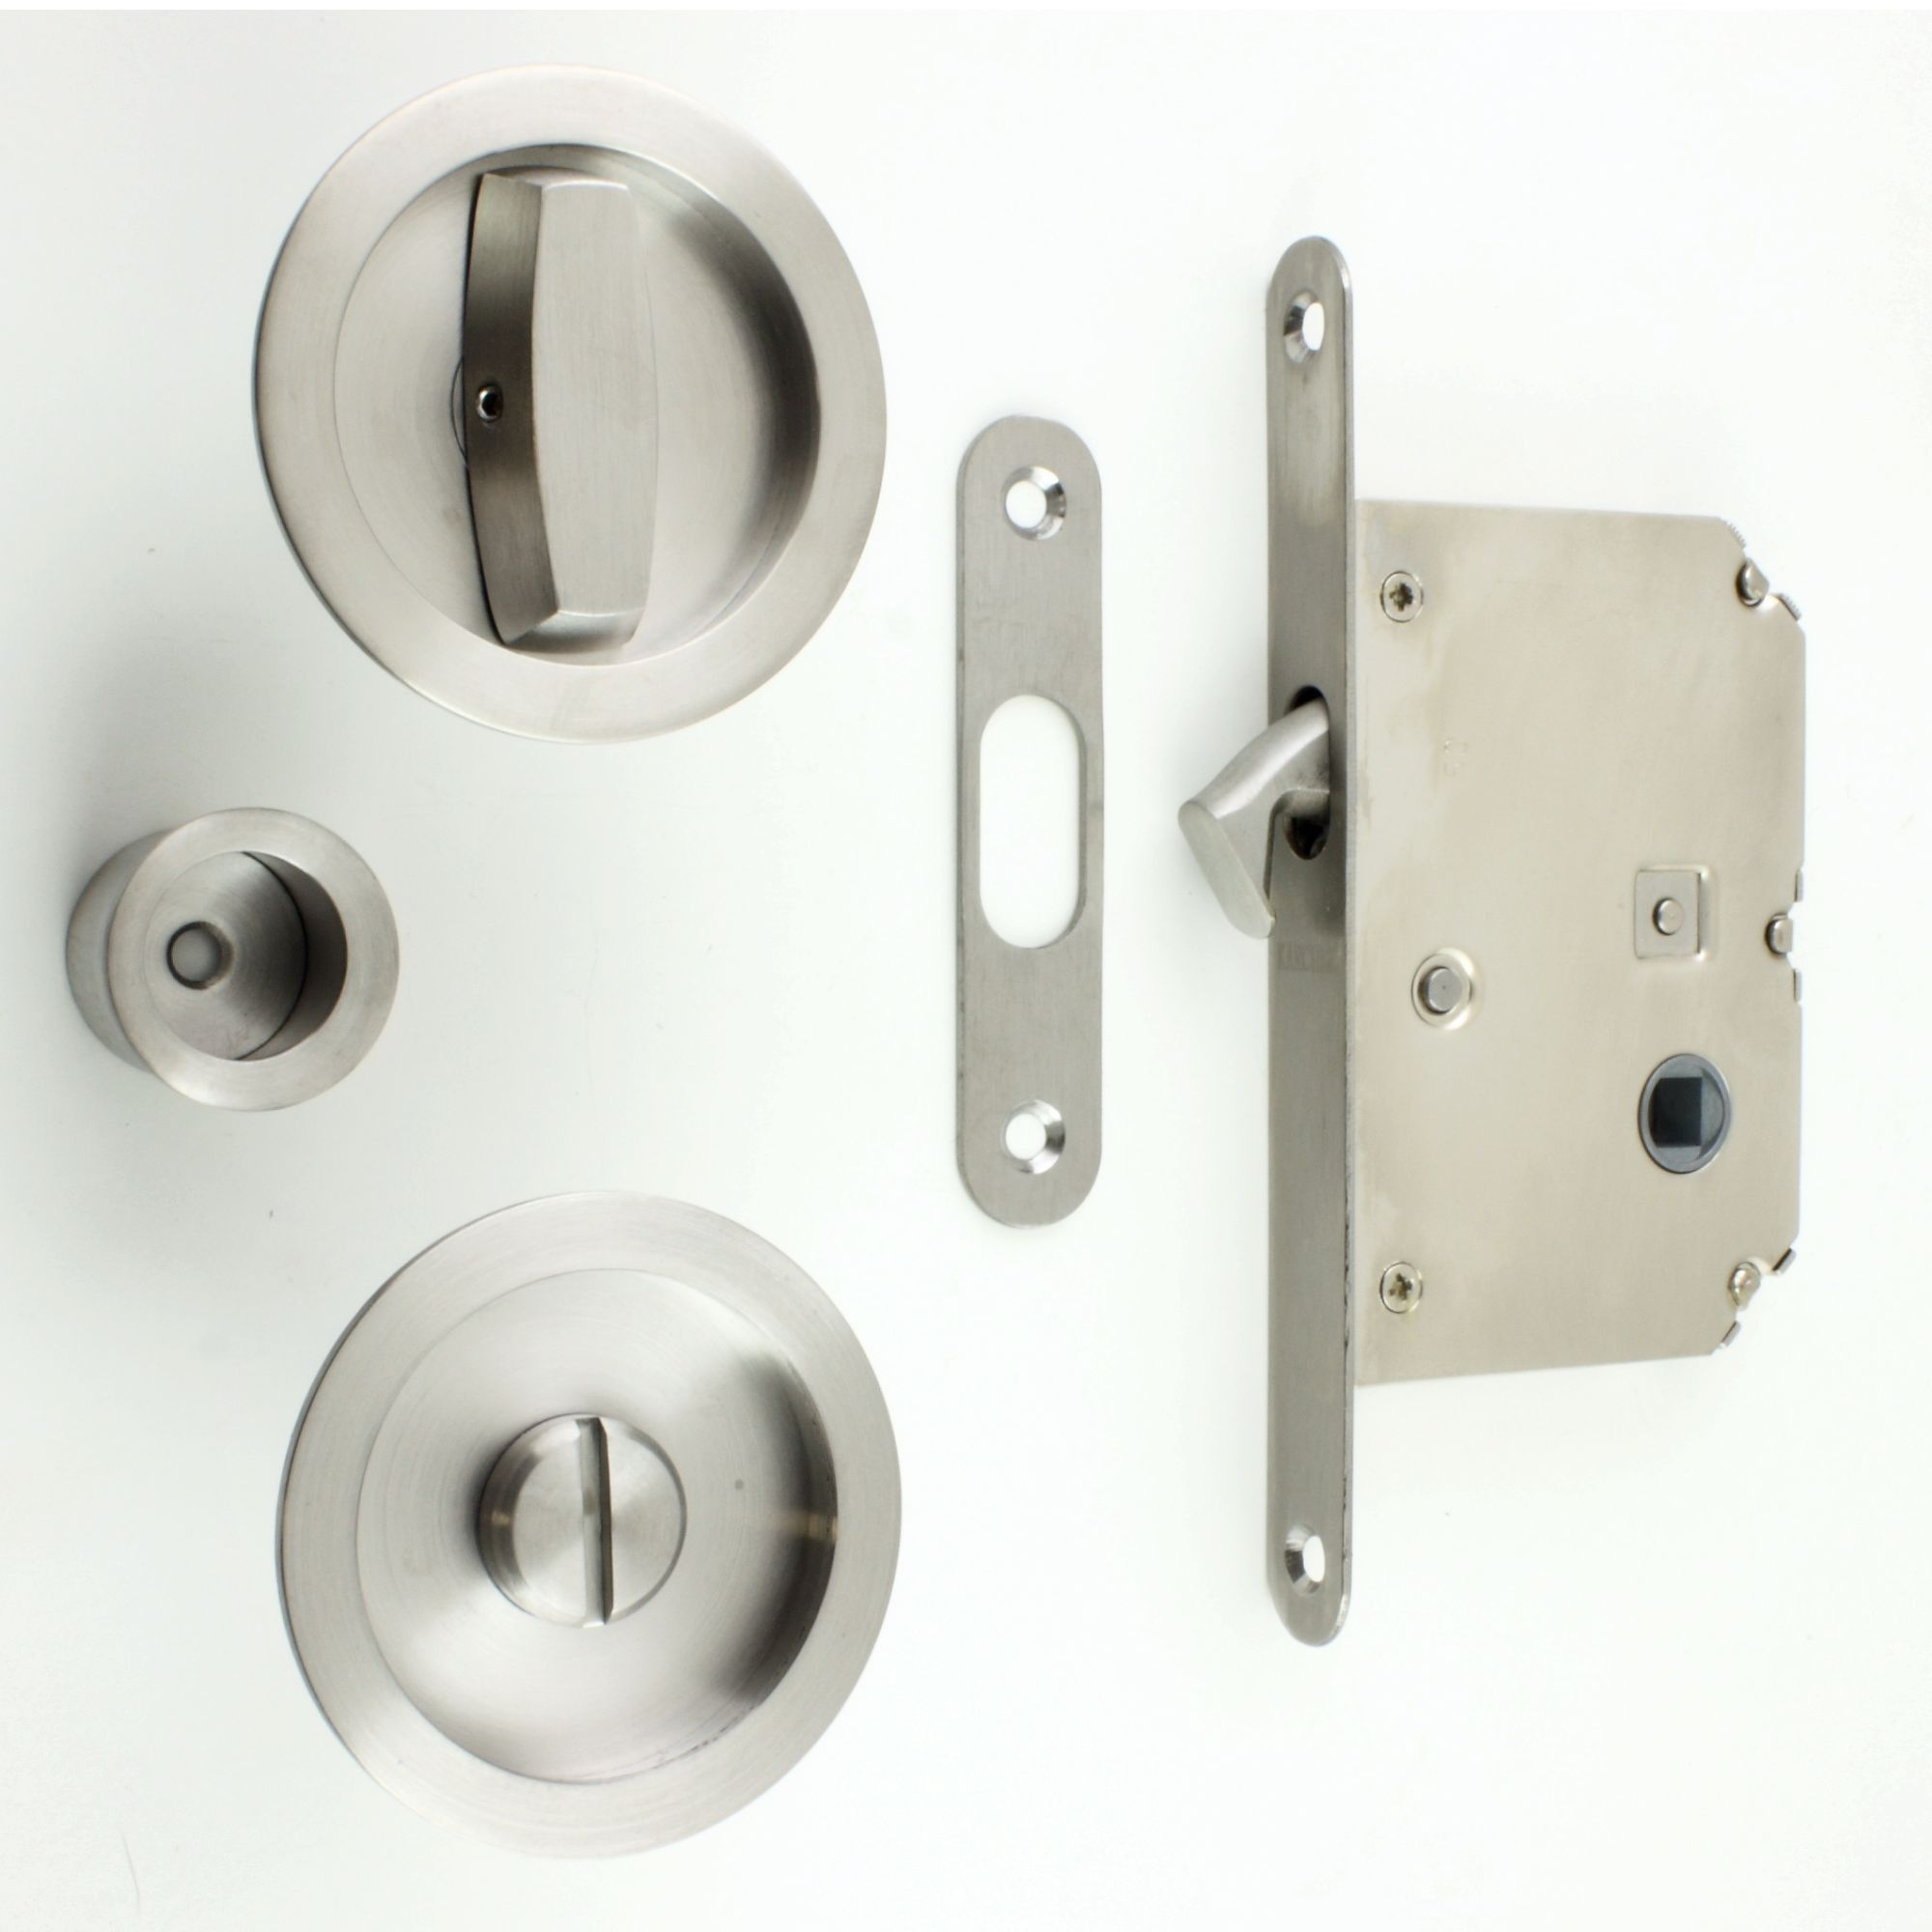 Door Knobs With Locks Bunnings | http://thewrightstuff.us ...